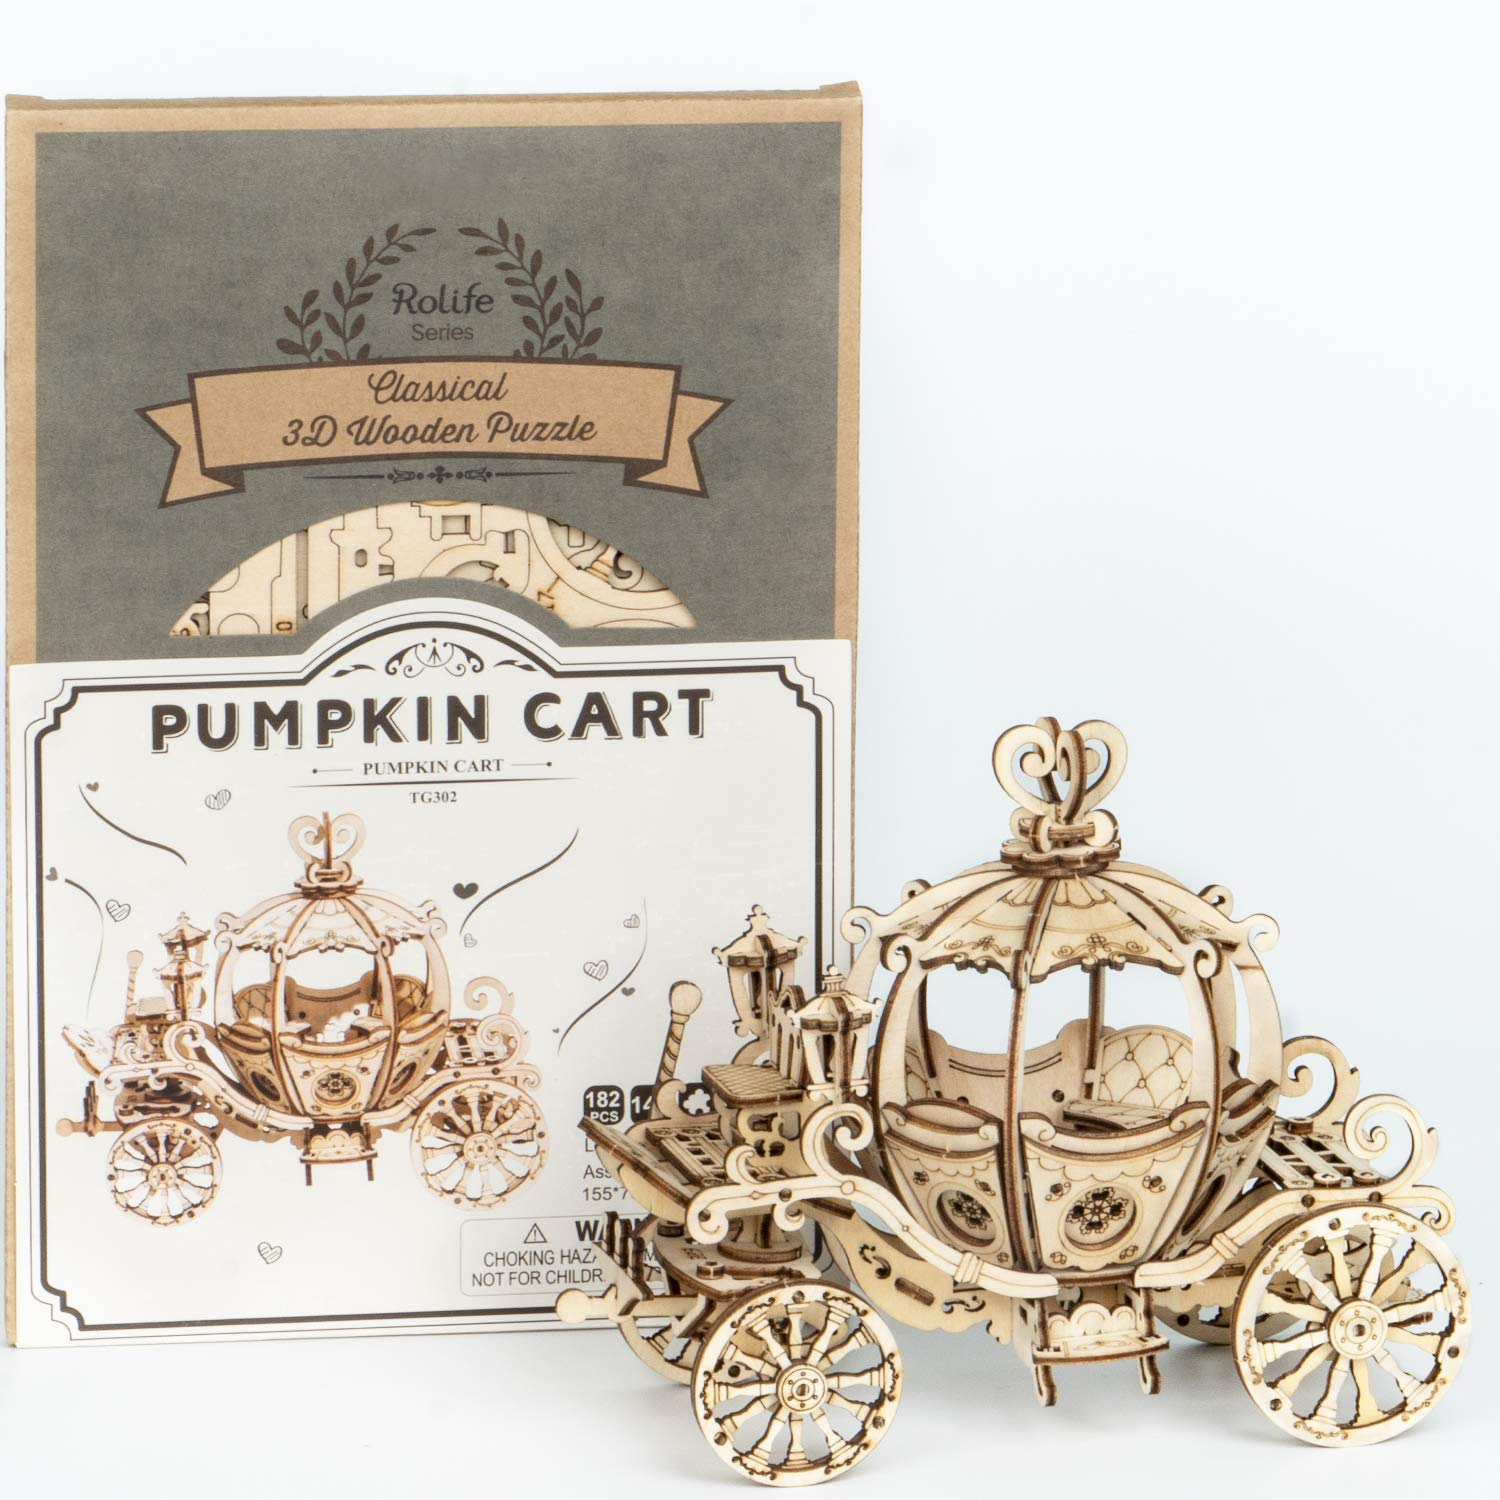 Rolife 3D Puzzle Wooden Puzzles for Adults Birthday Christmas Party Decor Gift Pumpkin Cart